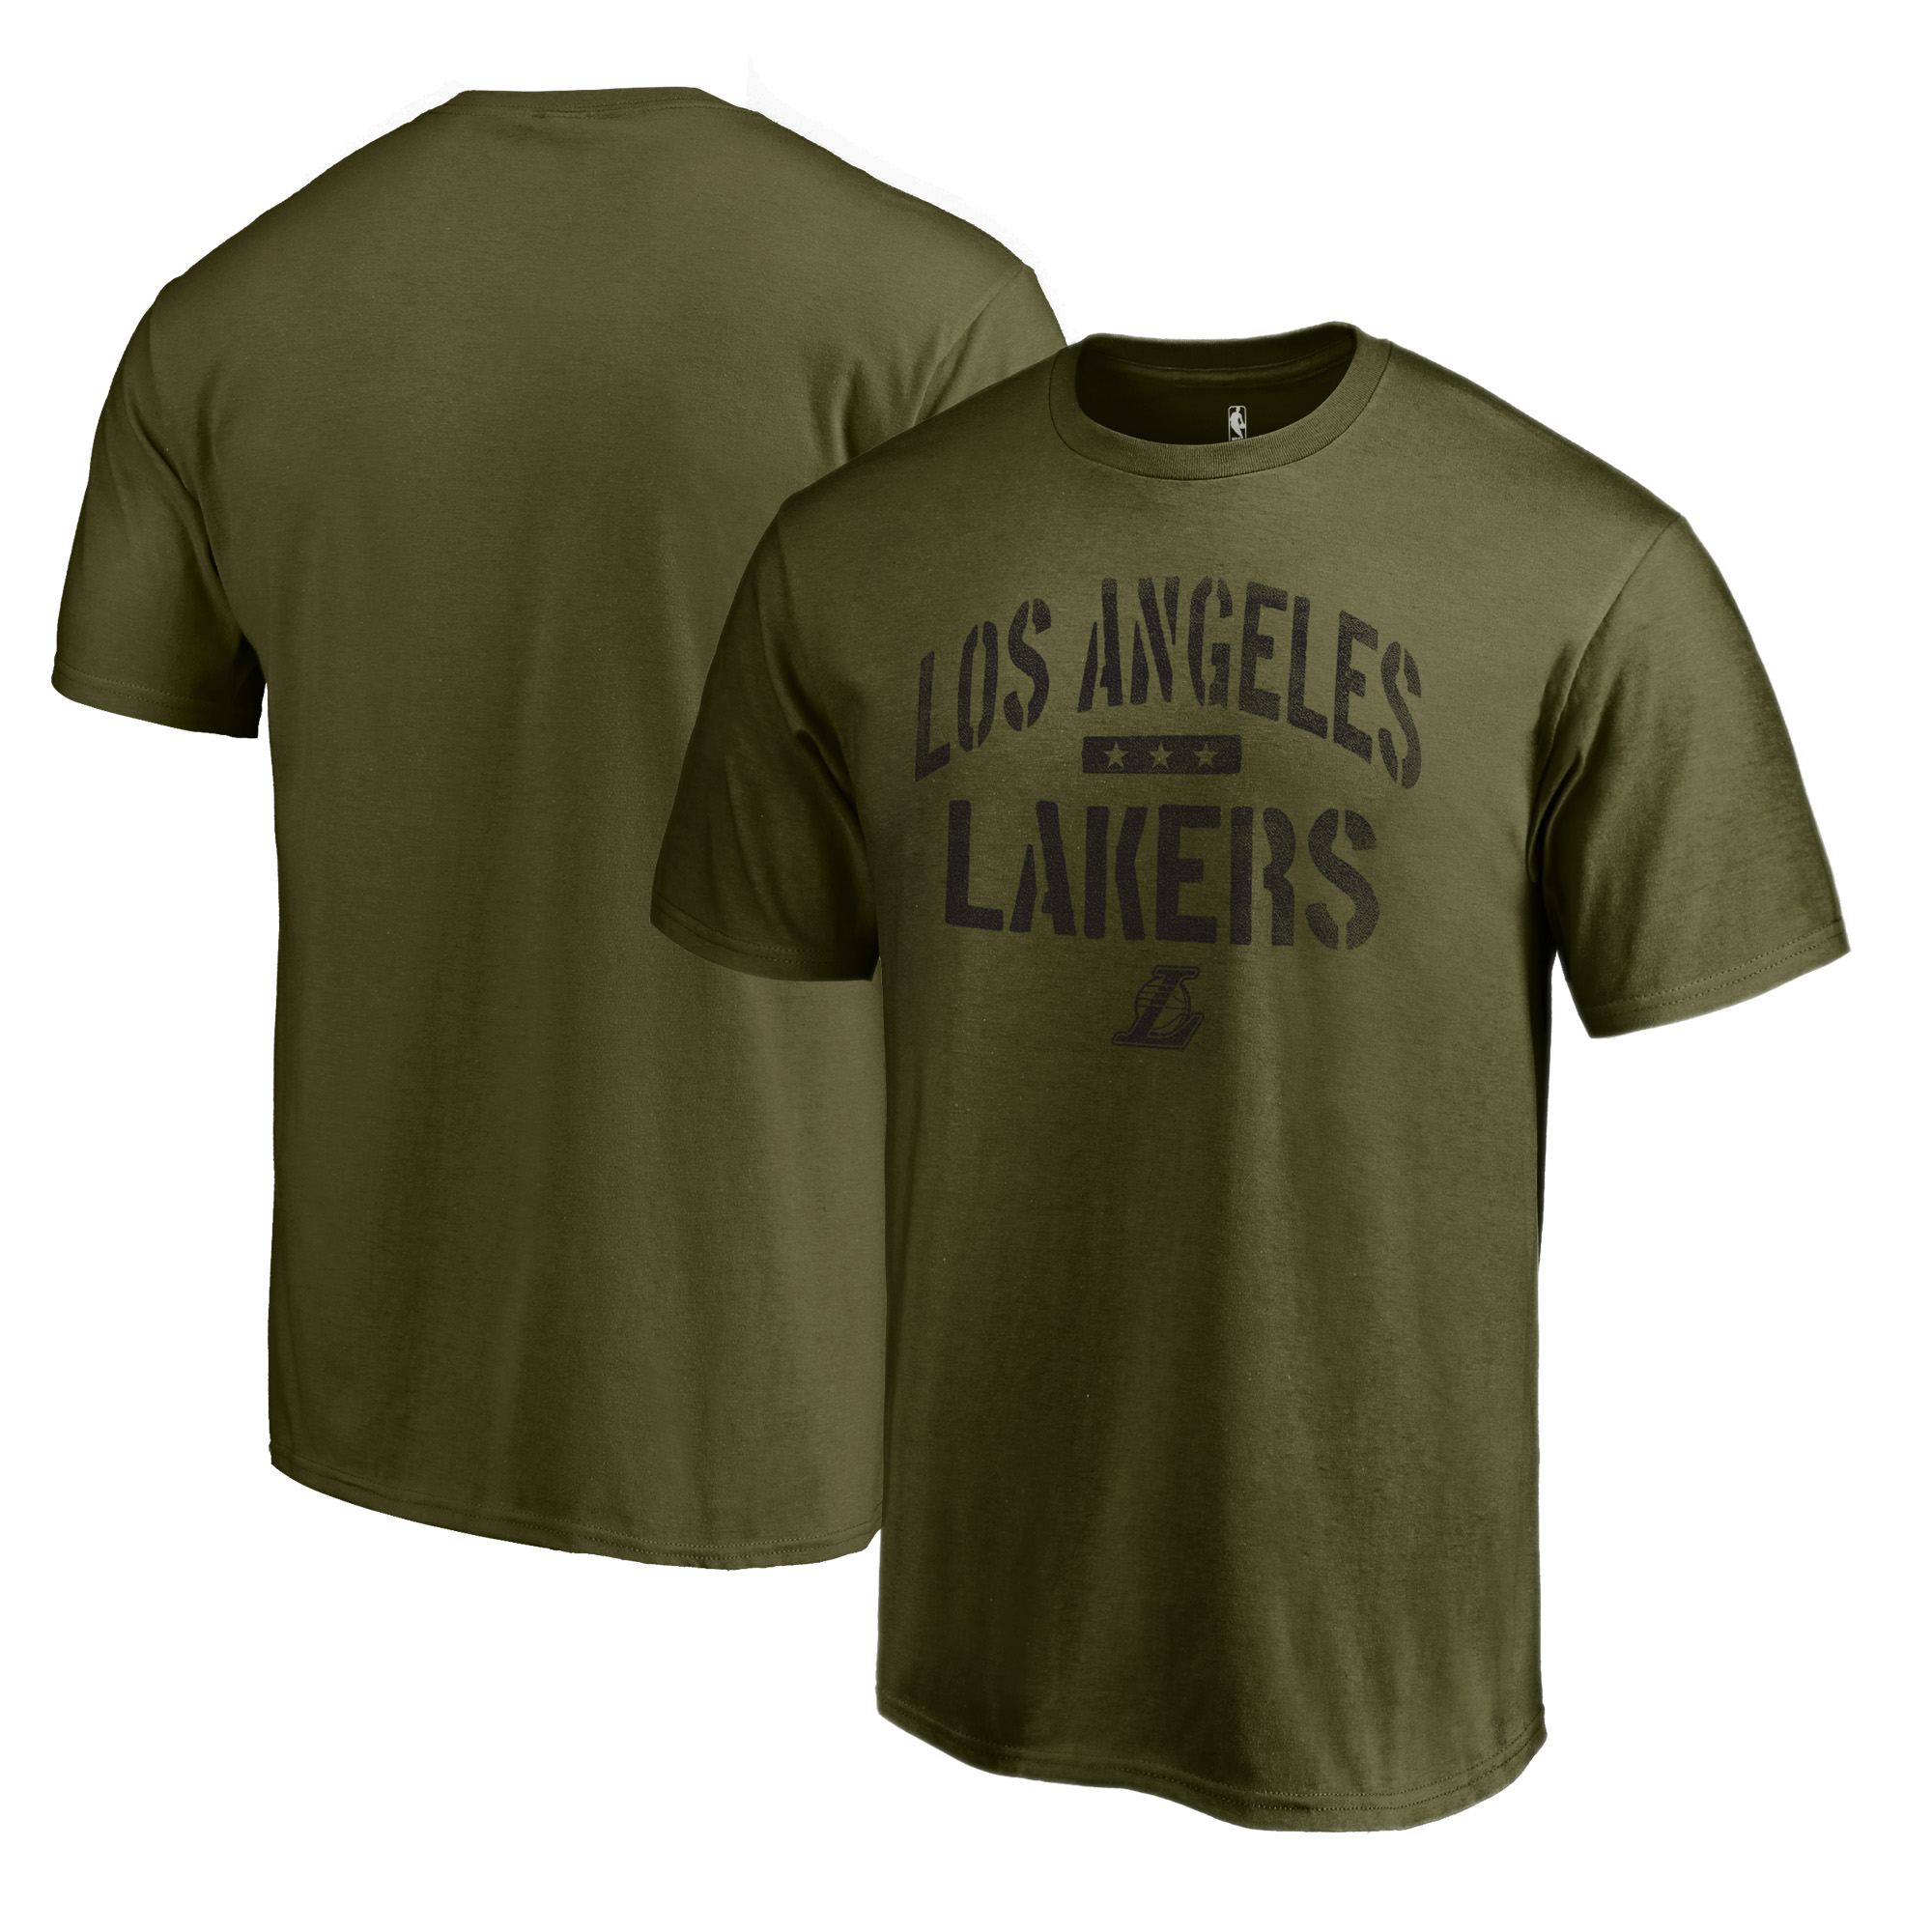 Los Angeles Lakers Fanatics Branded Camo Collection Jungle T-Shirt - Green